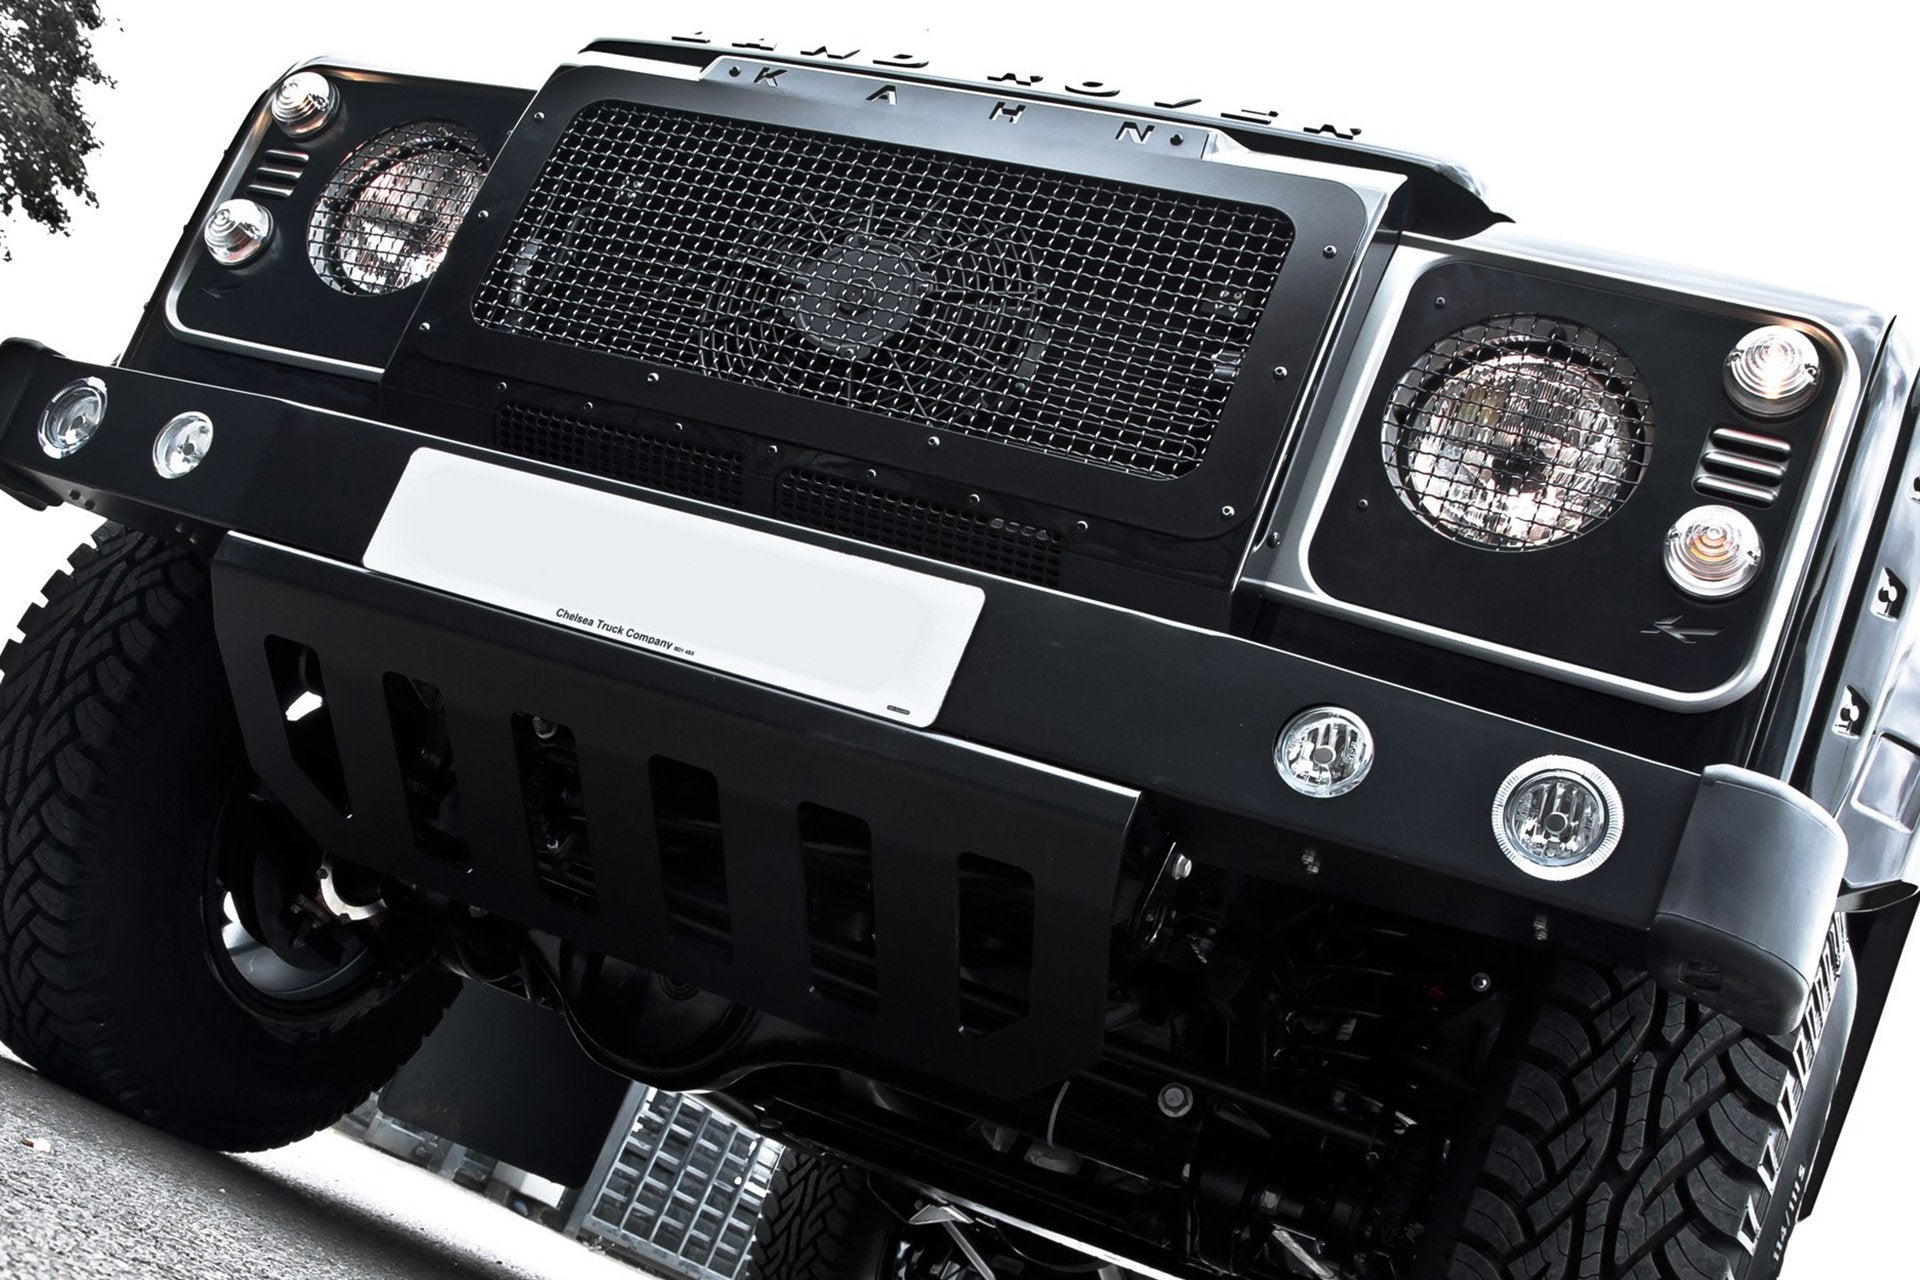 Land Rover Defender (1991-2016) Headlight Covers With Mesh Image 5073